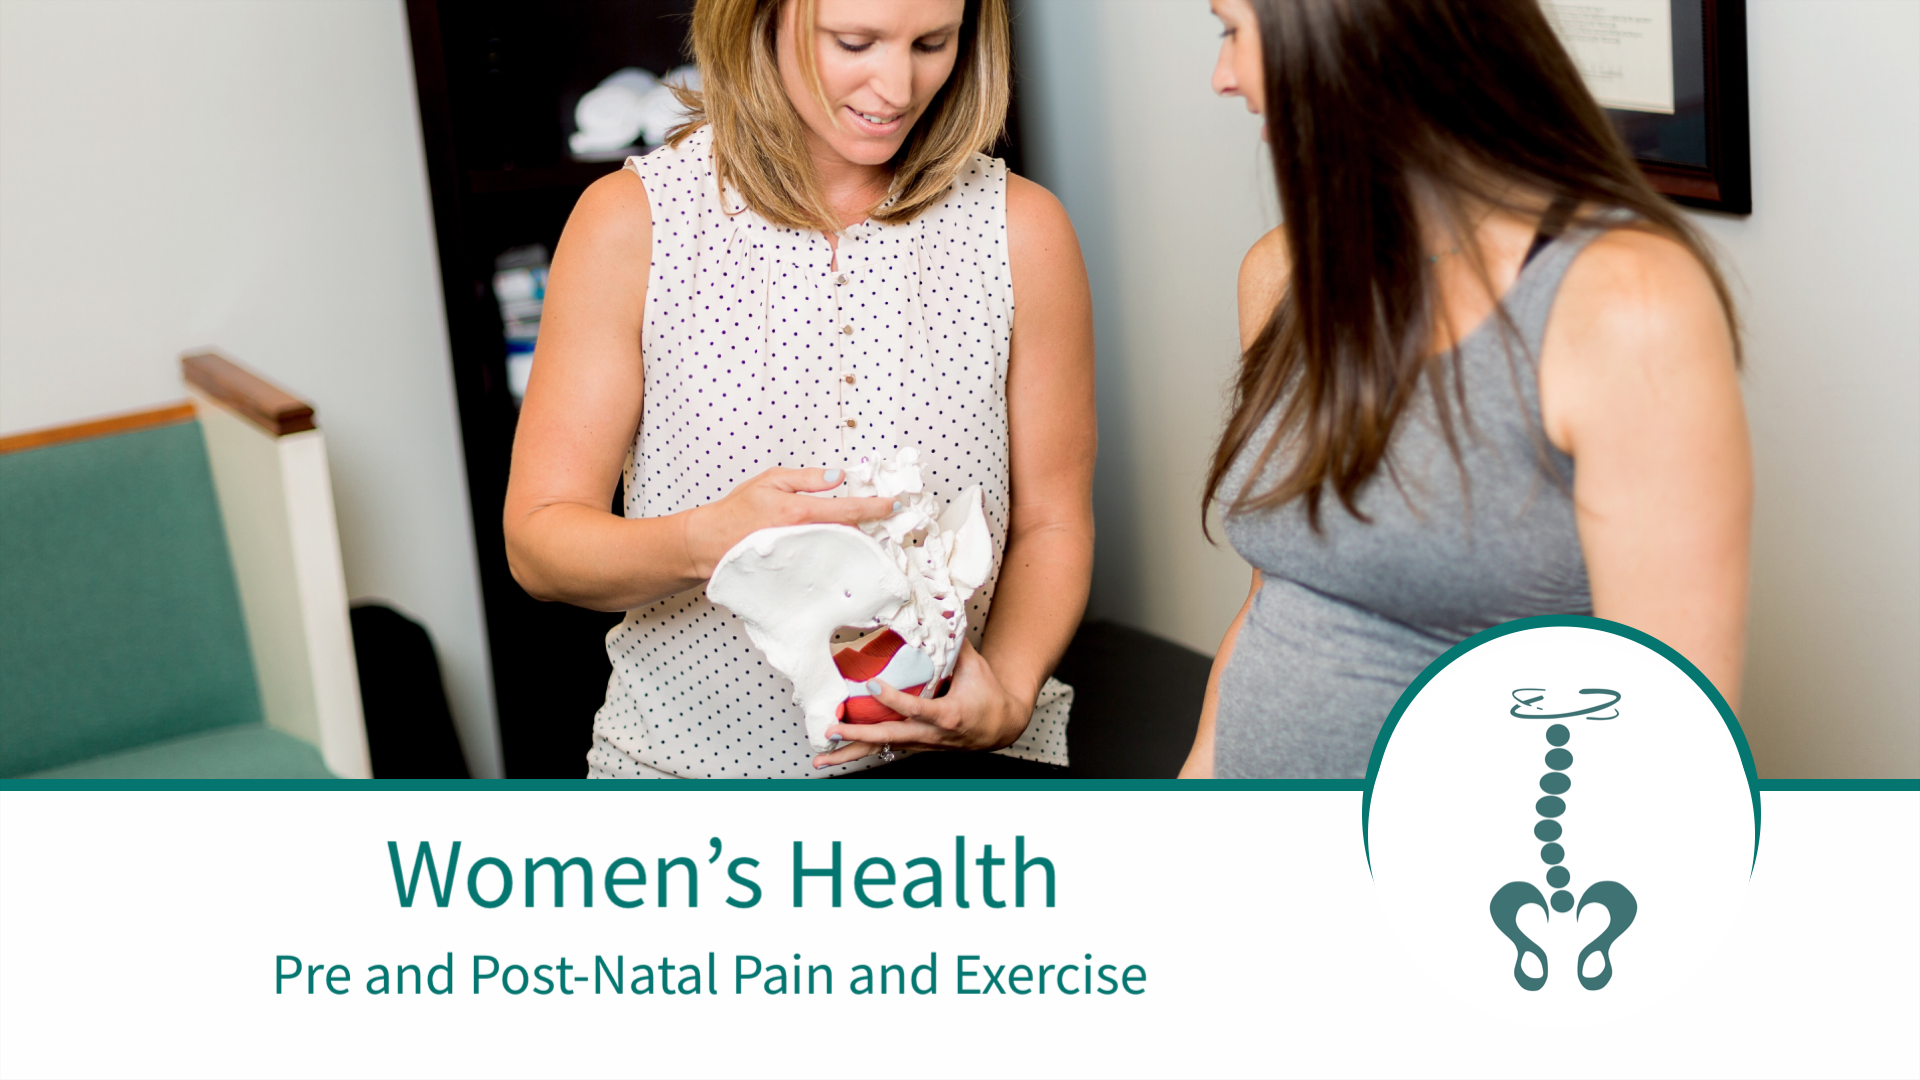 Women's Health Physical Therapy Wake Forest NC